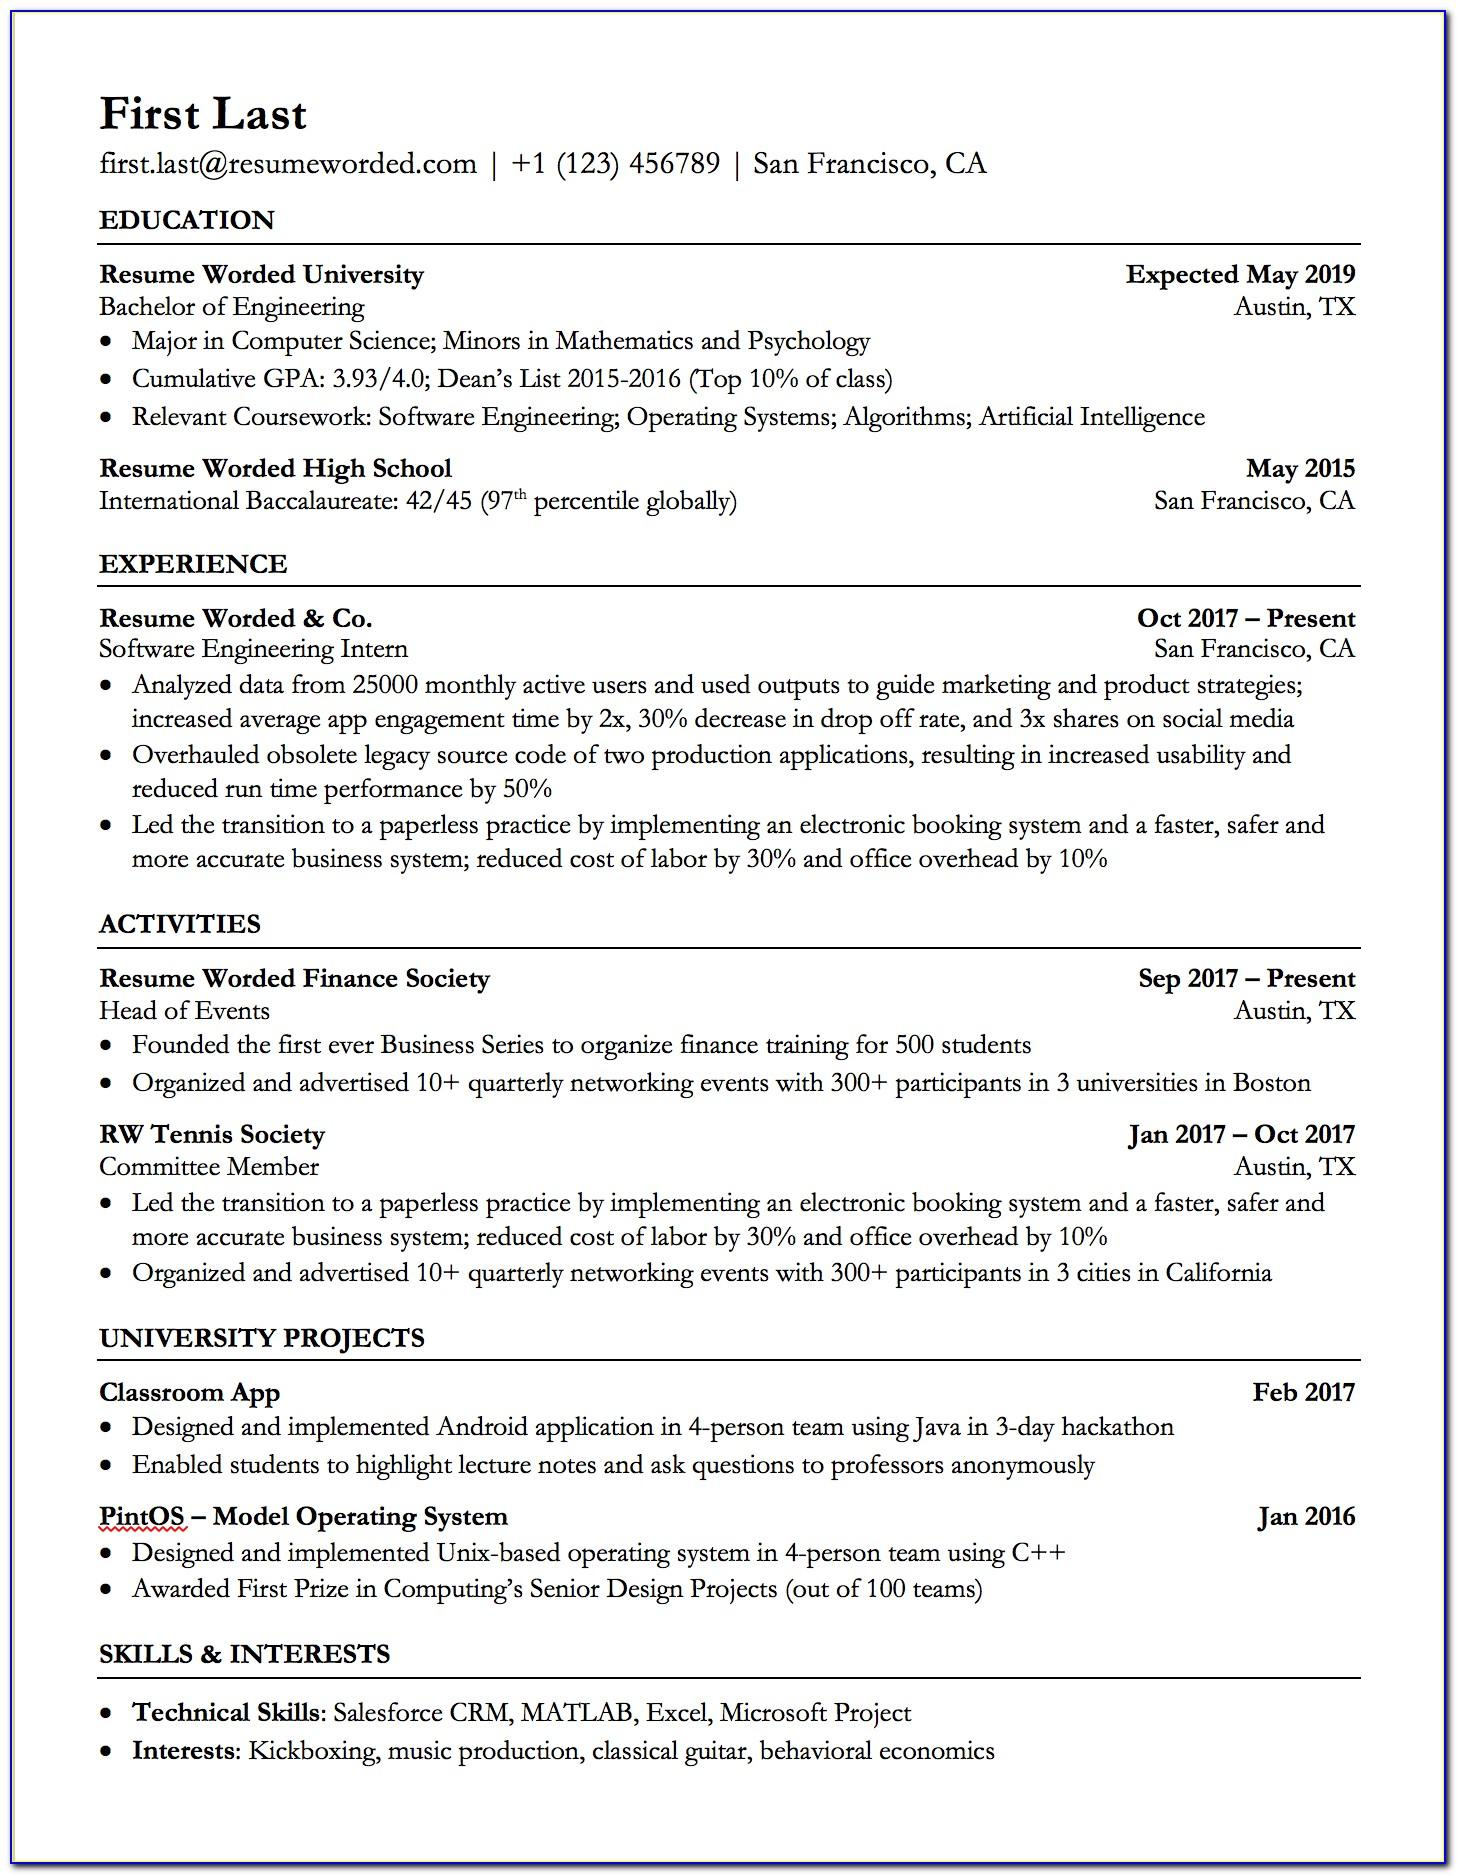 Resume Template For Executive Secretary